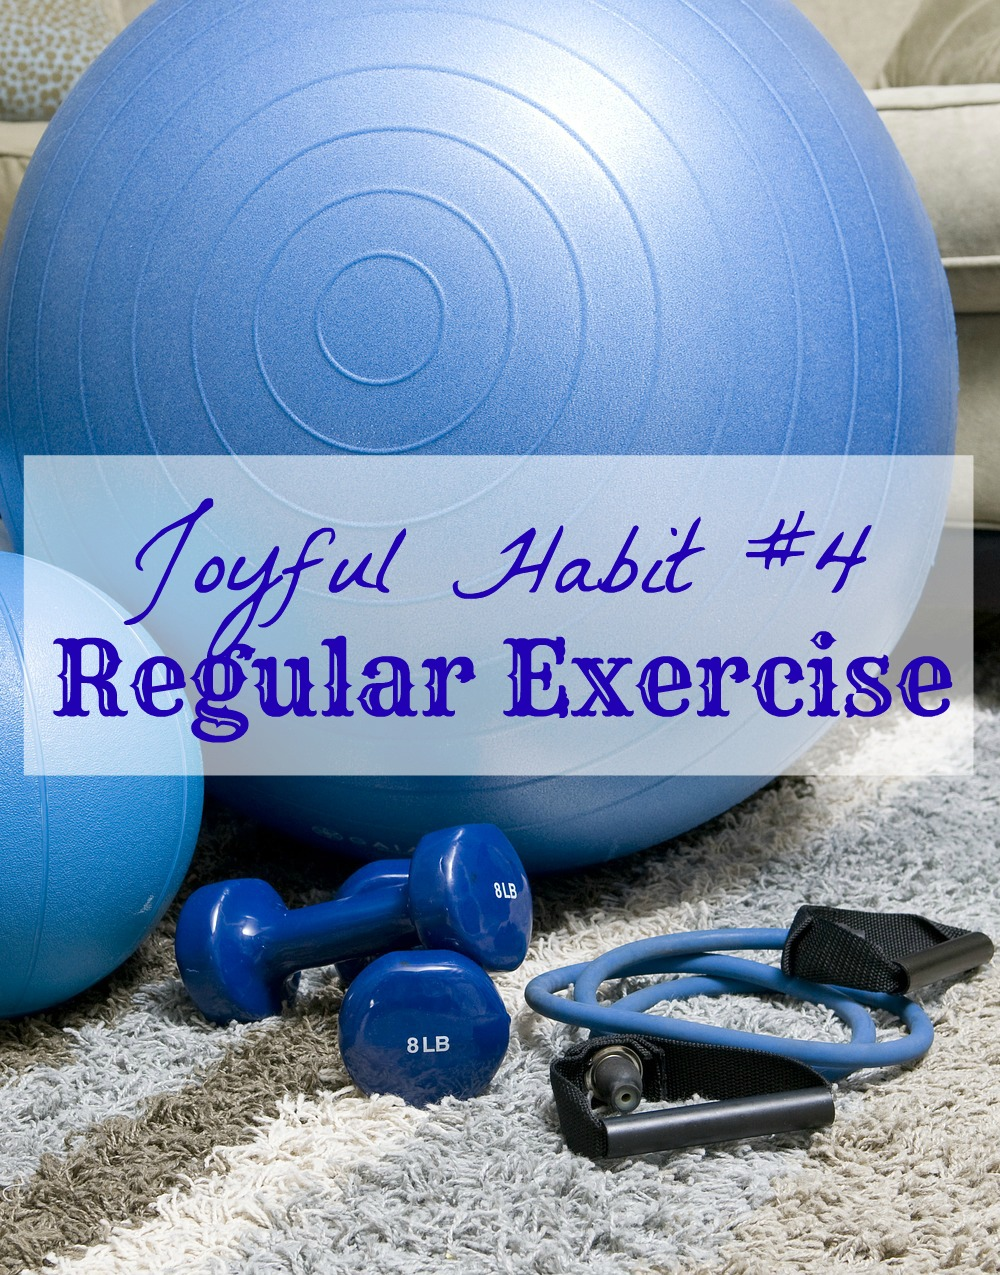 Joyful Habit #4 - Benefits Of Regular Exercise